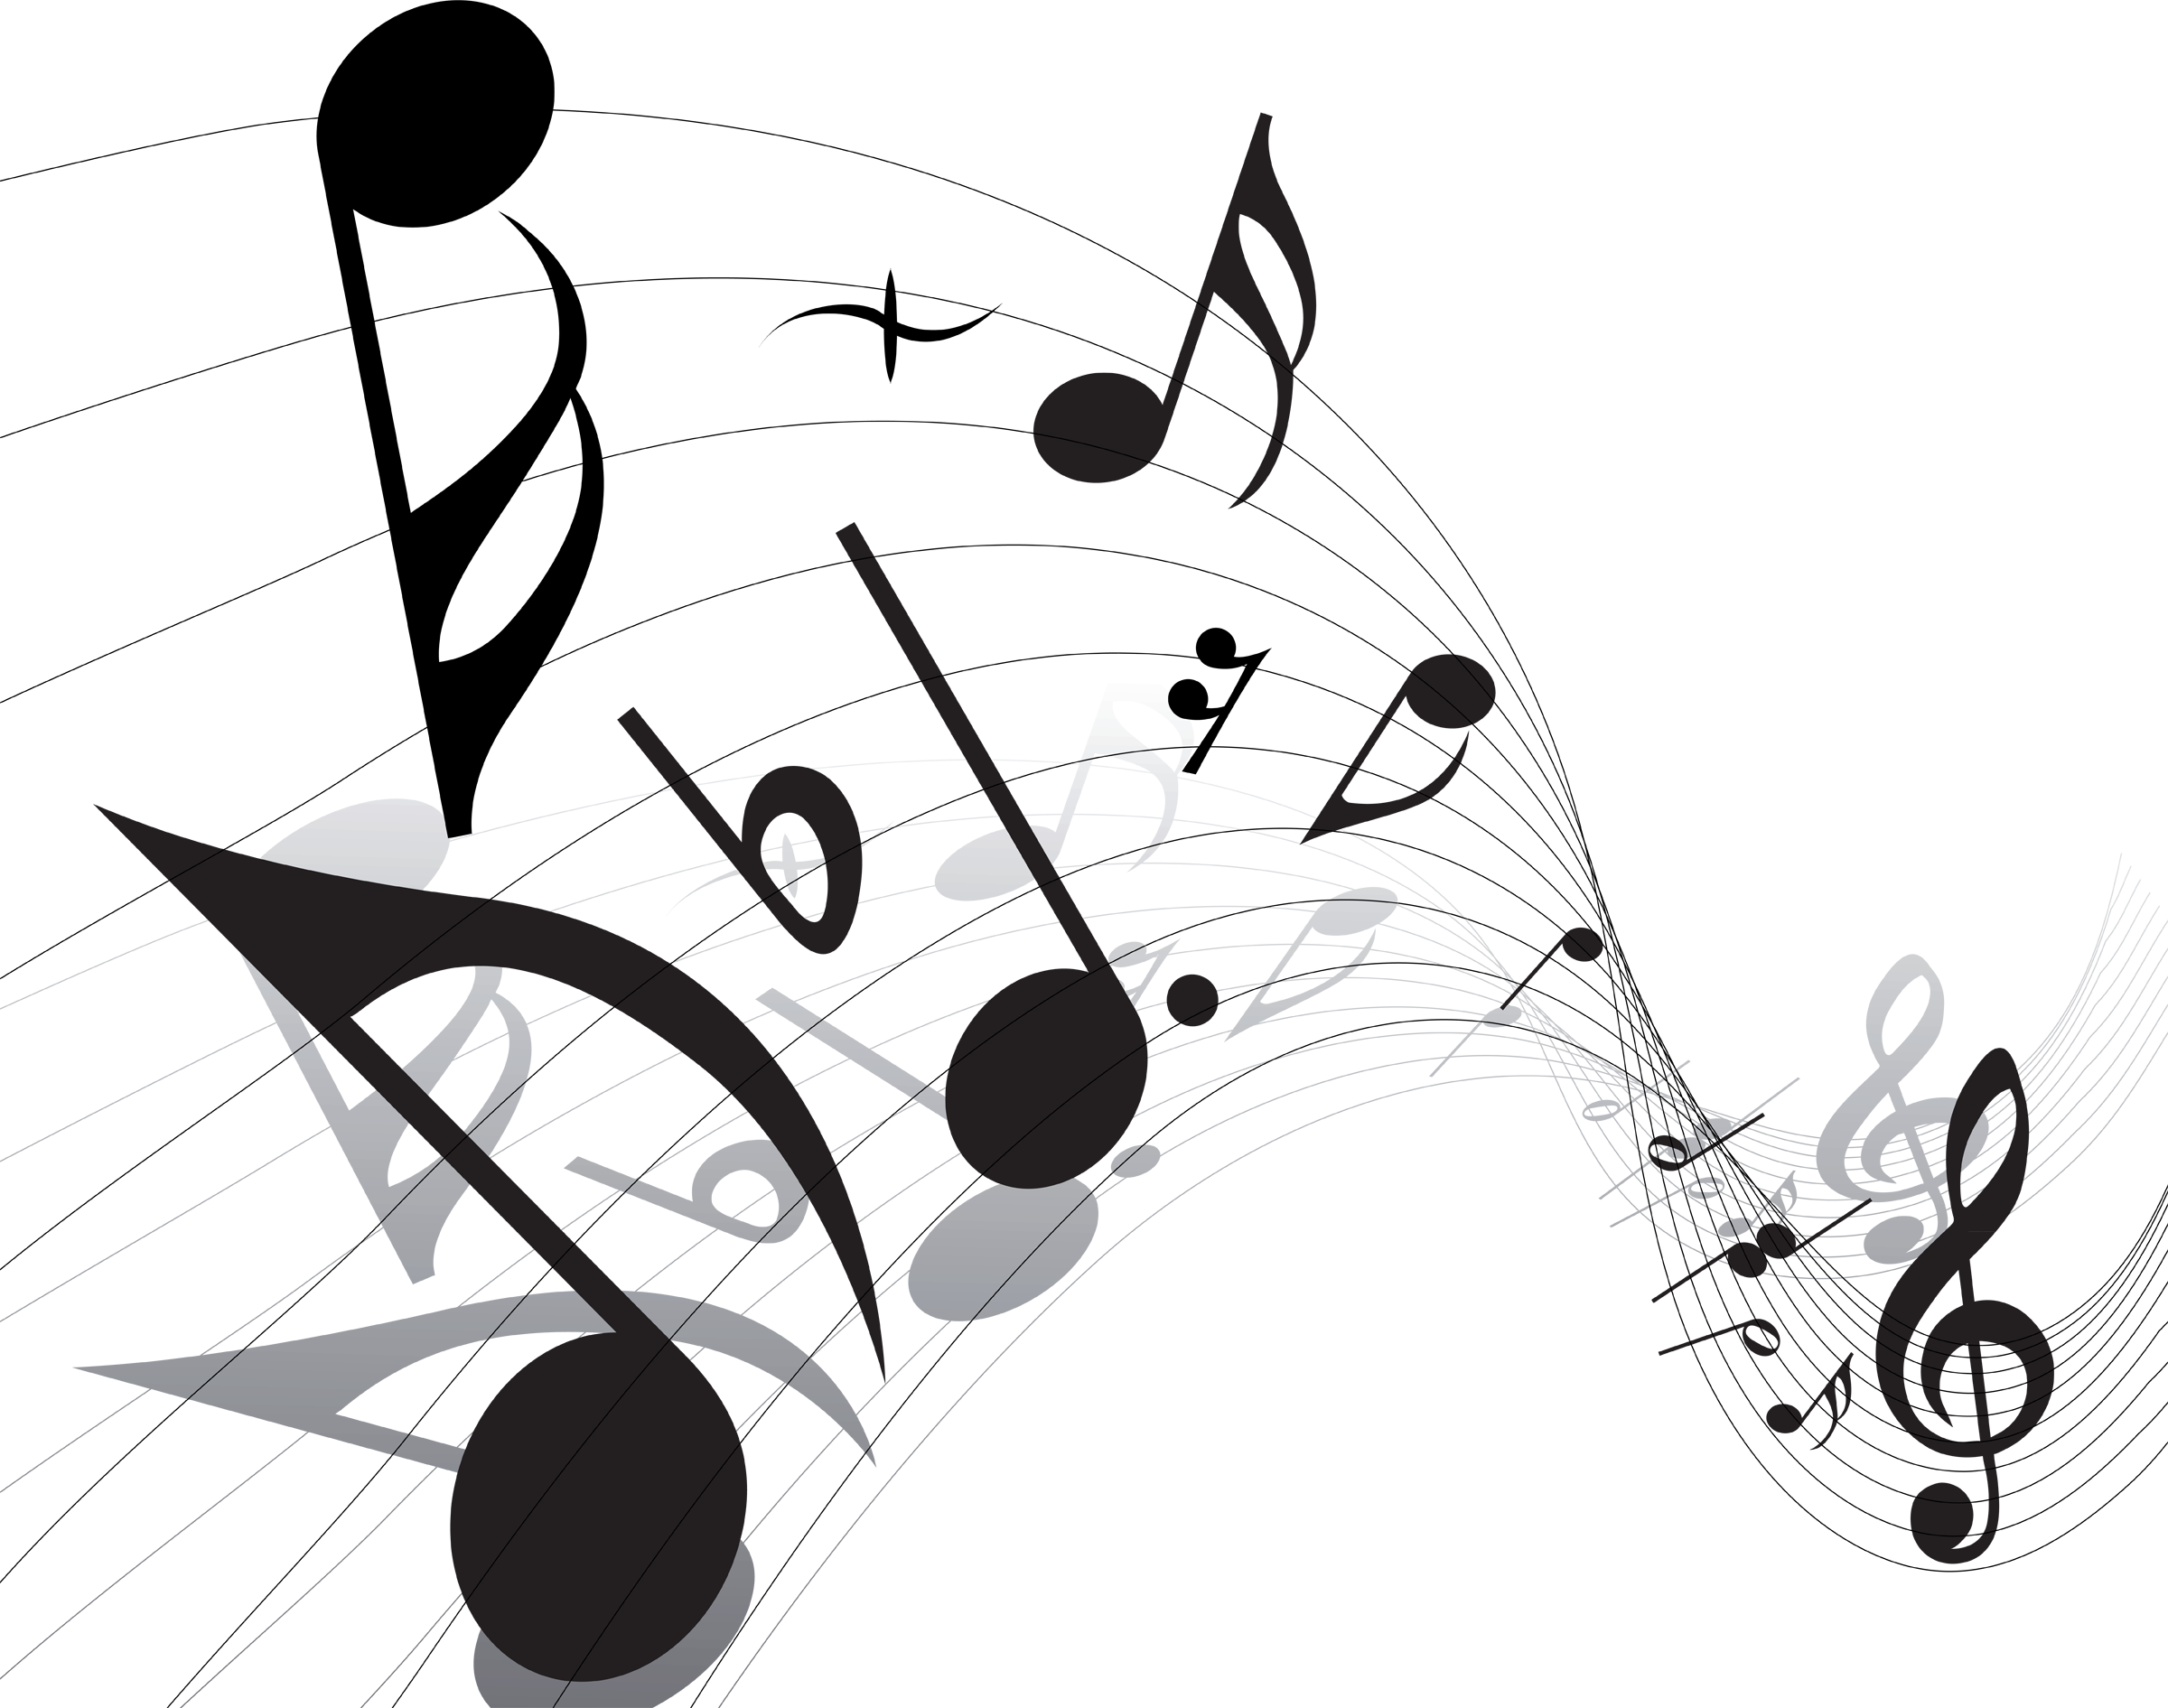 Transparent Music Notes Vector